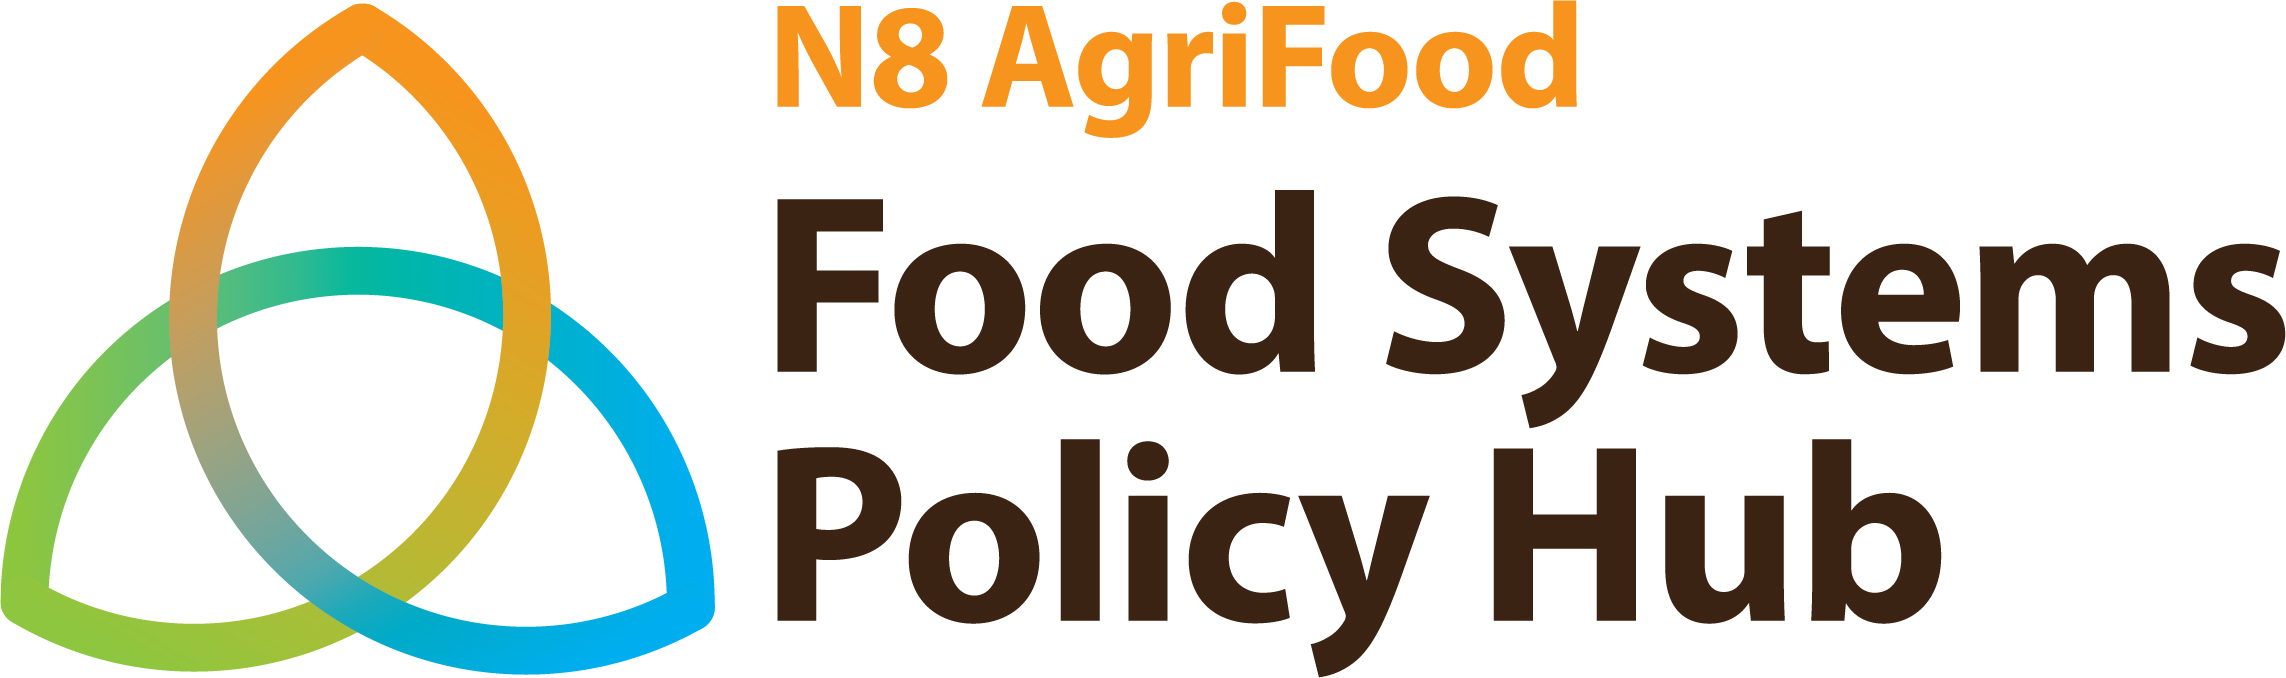 N8 AgriFood Food Systems Policy Hub logo